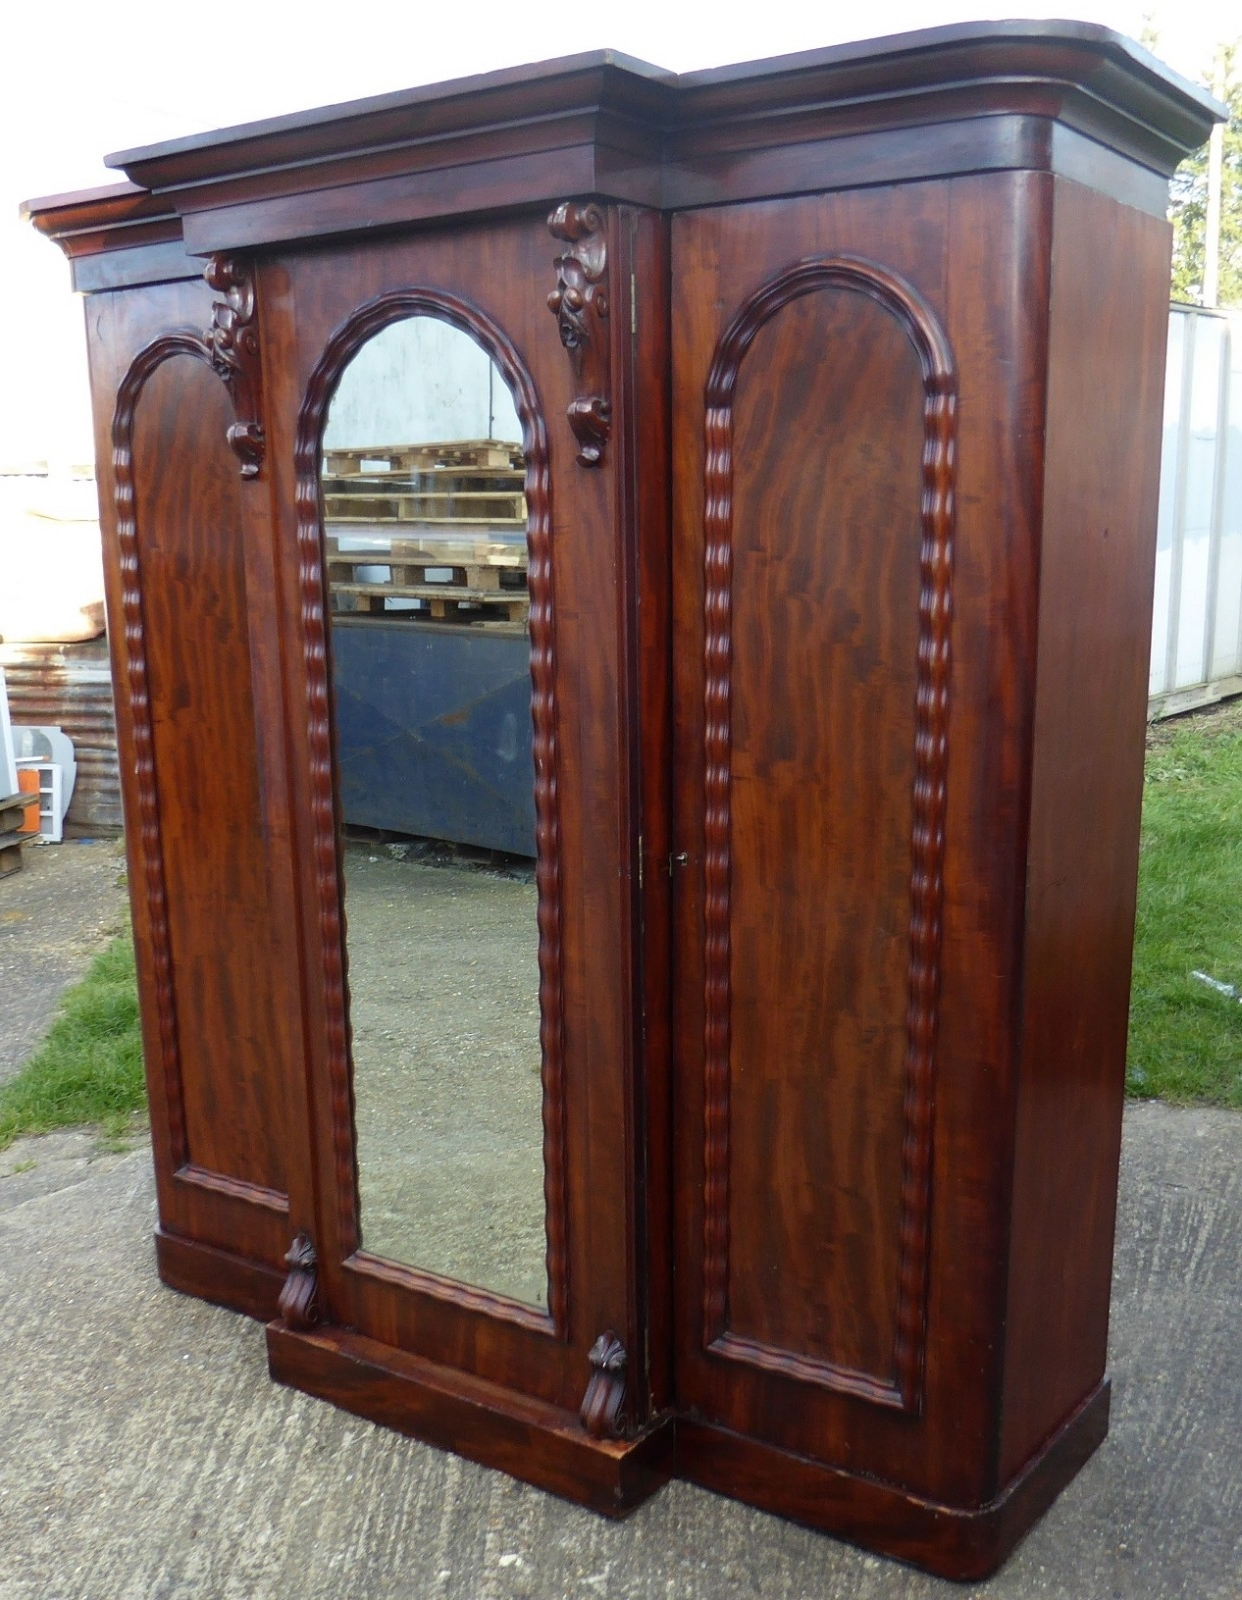 Antique Wardrobes With Breakfront Wardrobes (View 15 of 15)